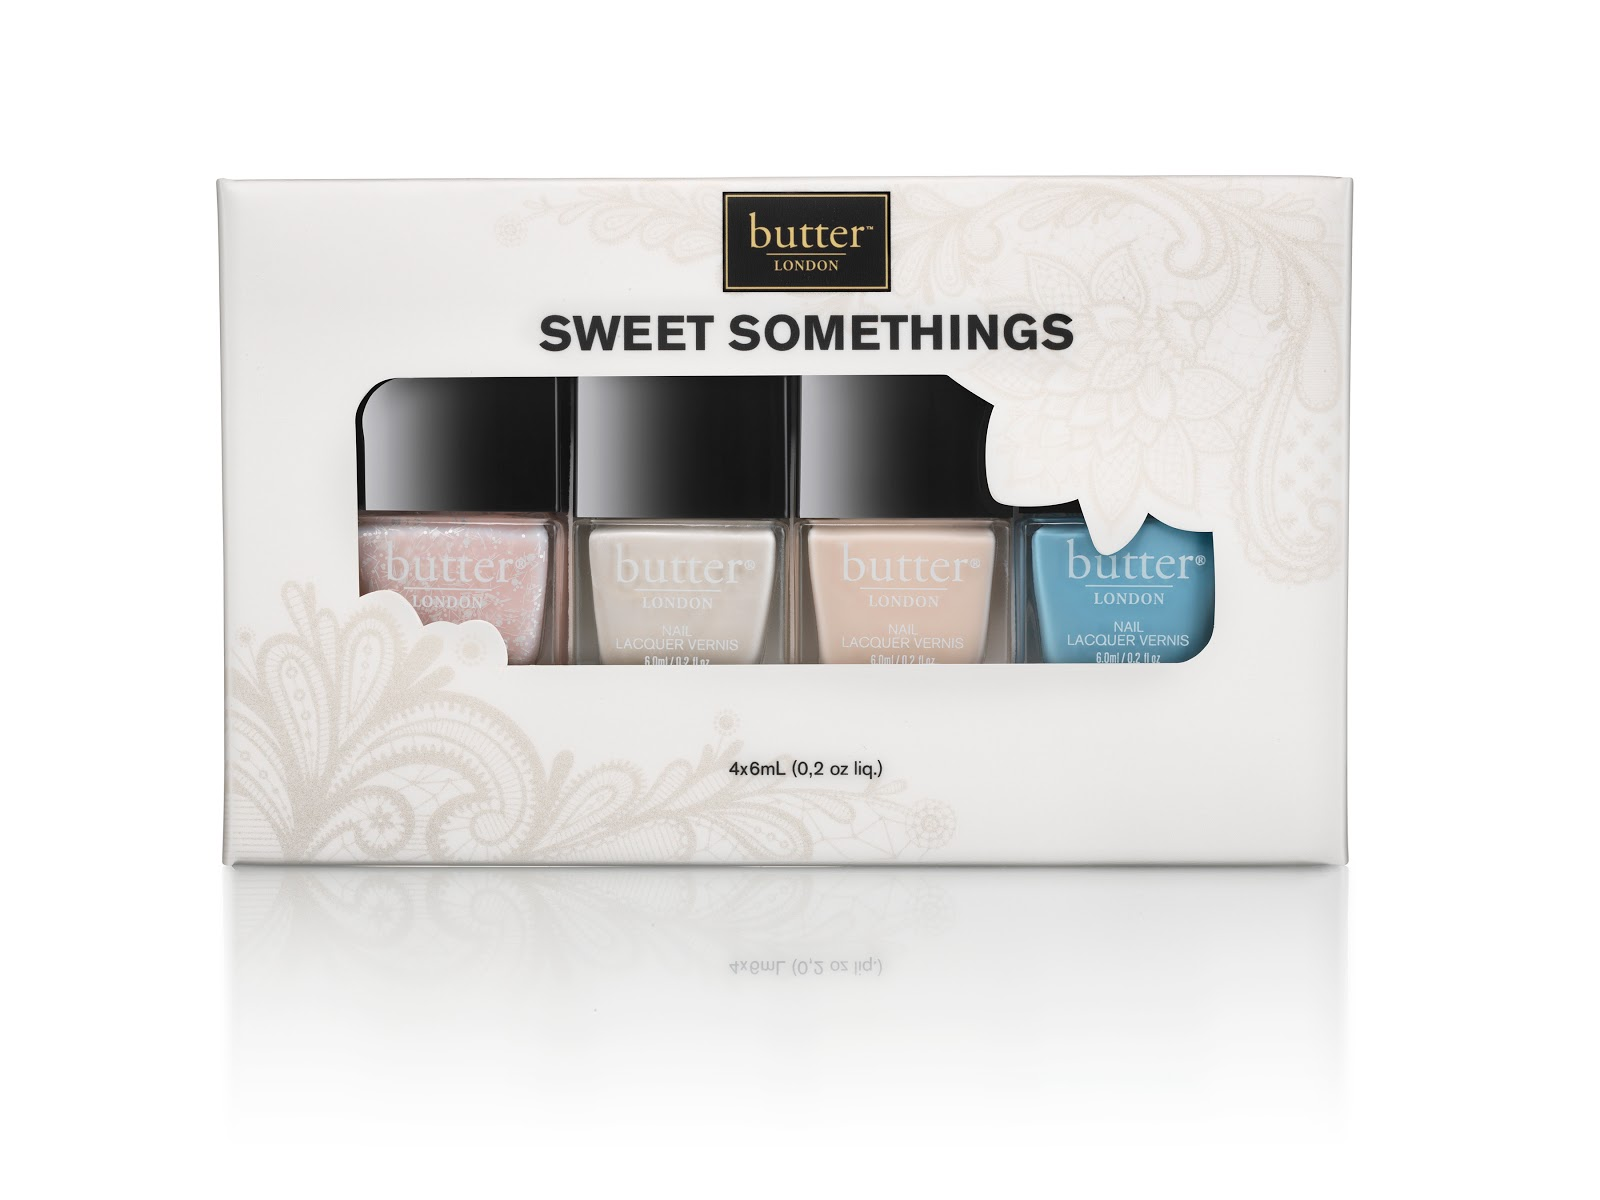 butter LONDON Sweet Somethings